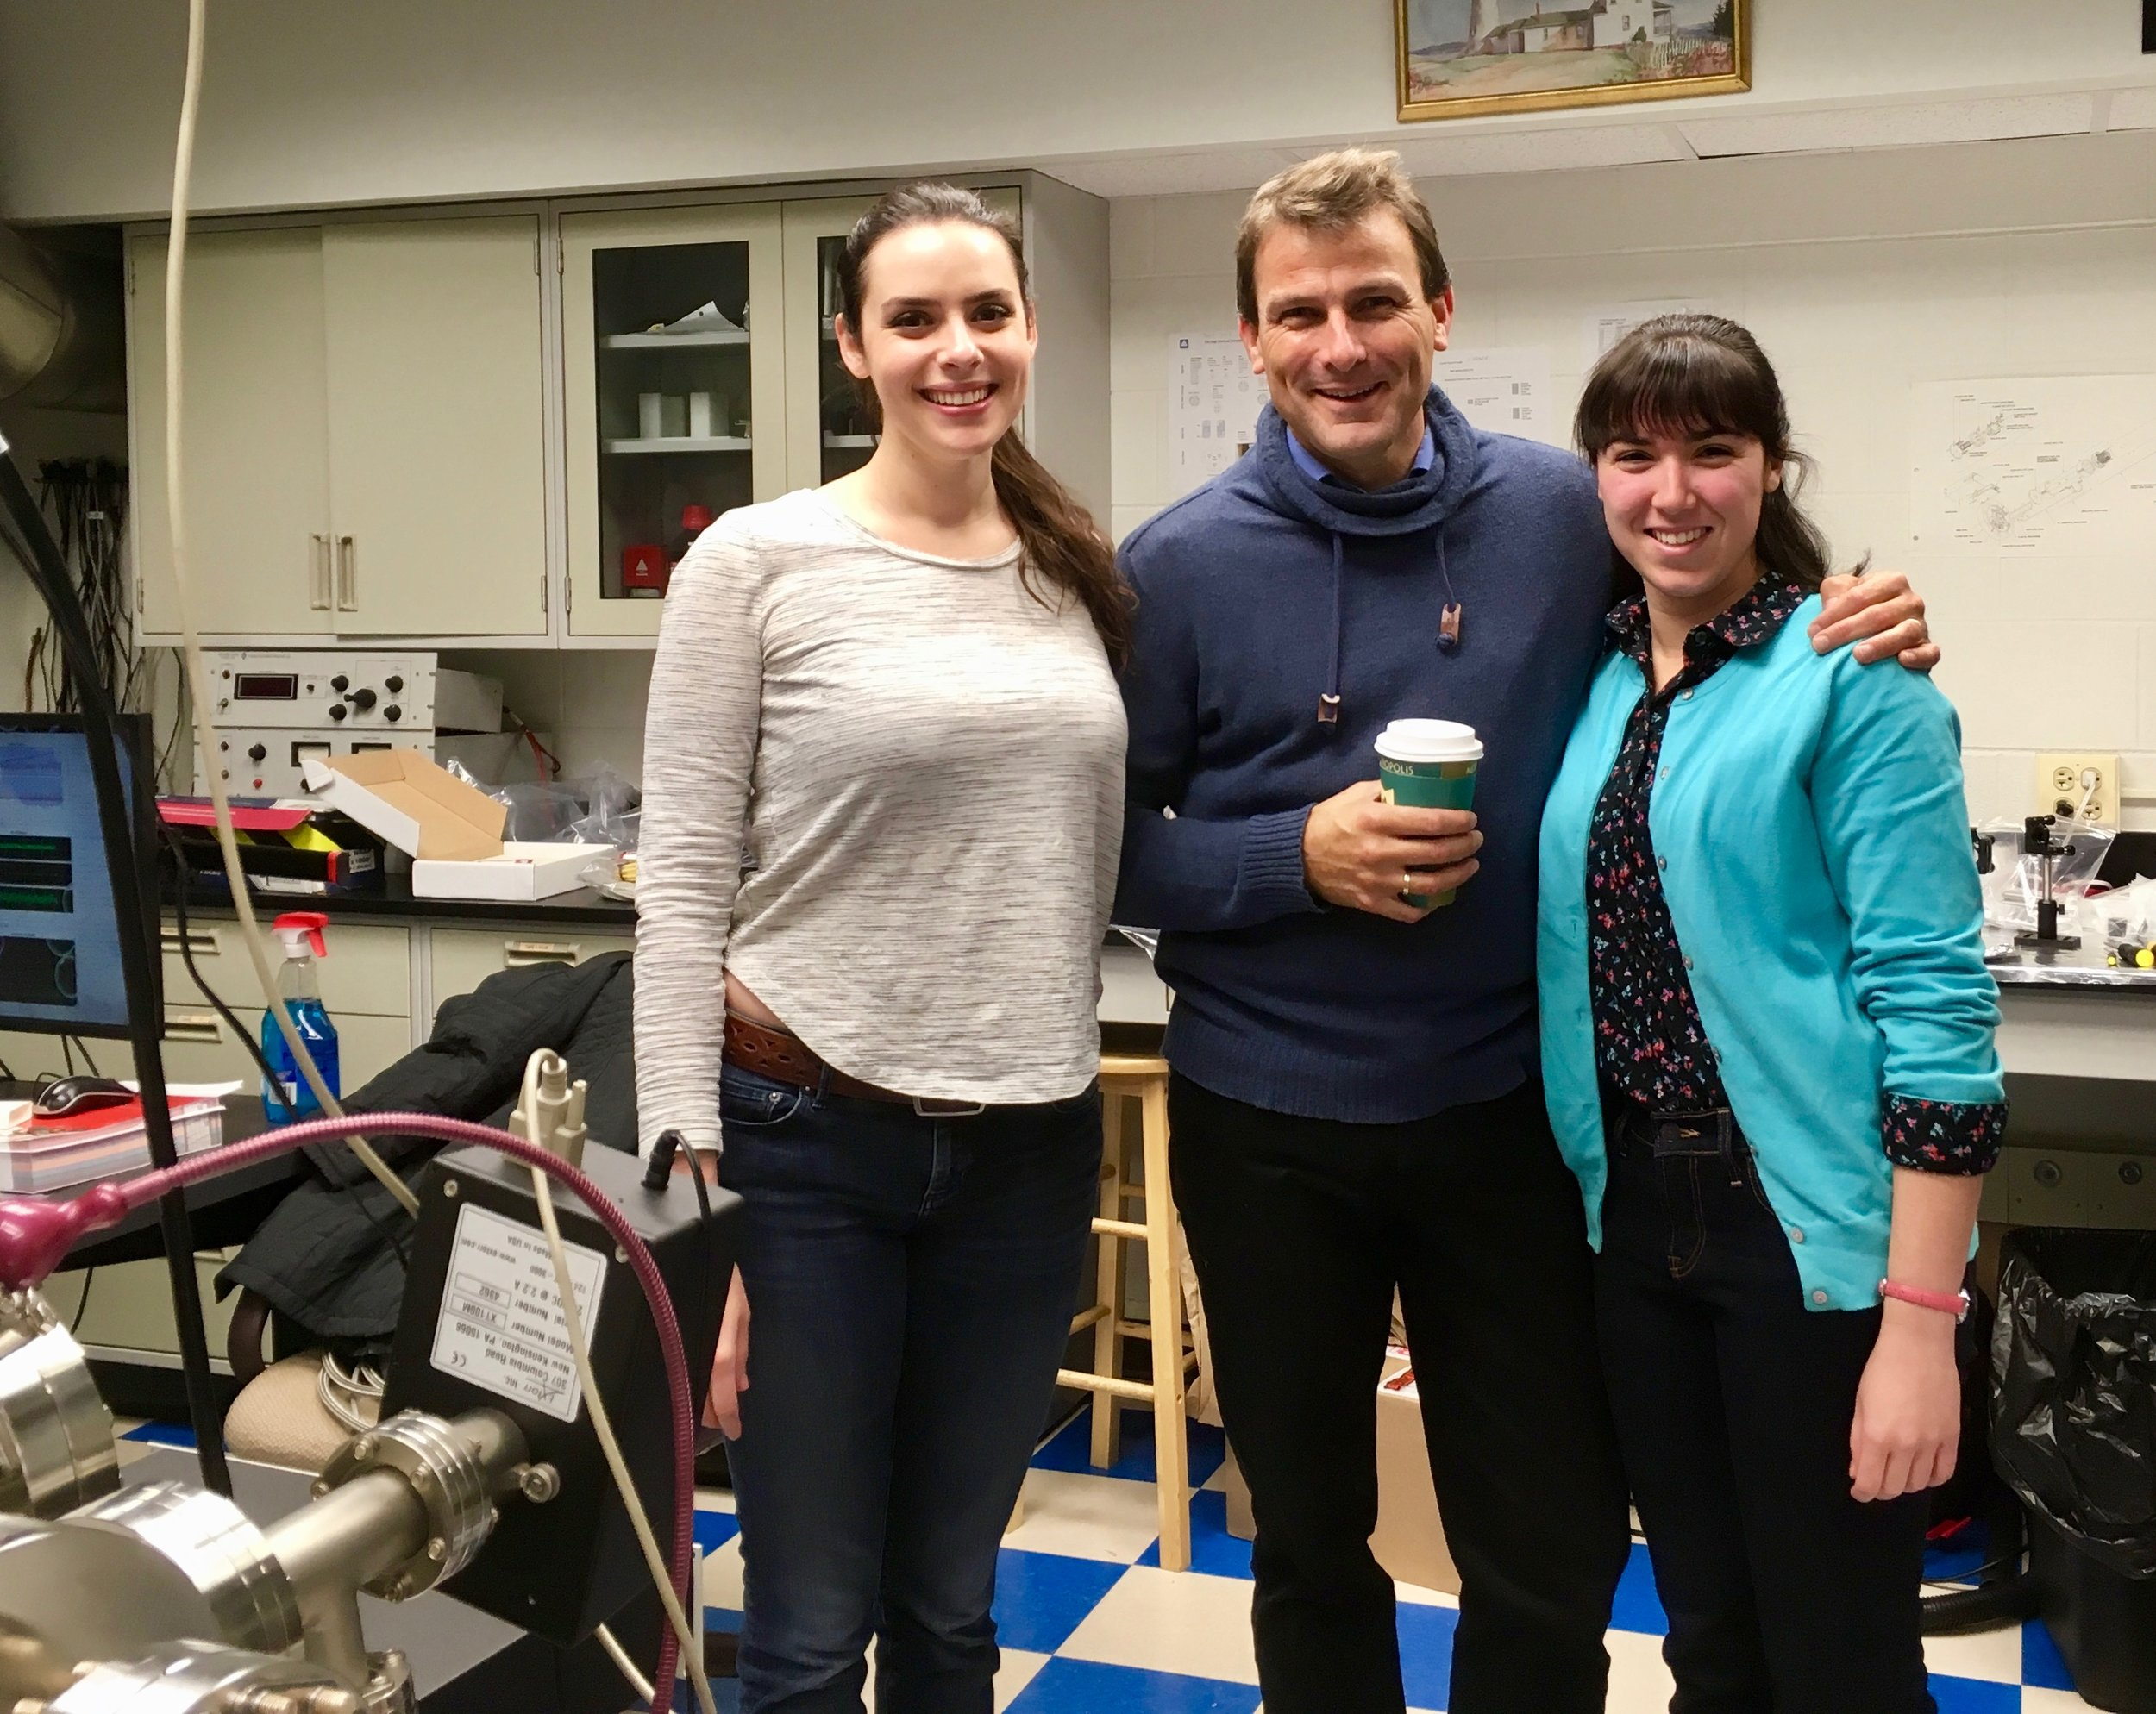 Ludo (and Rachael) visited the lab before AVS.